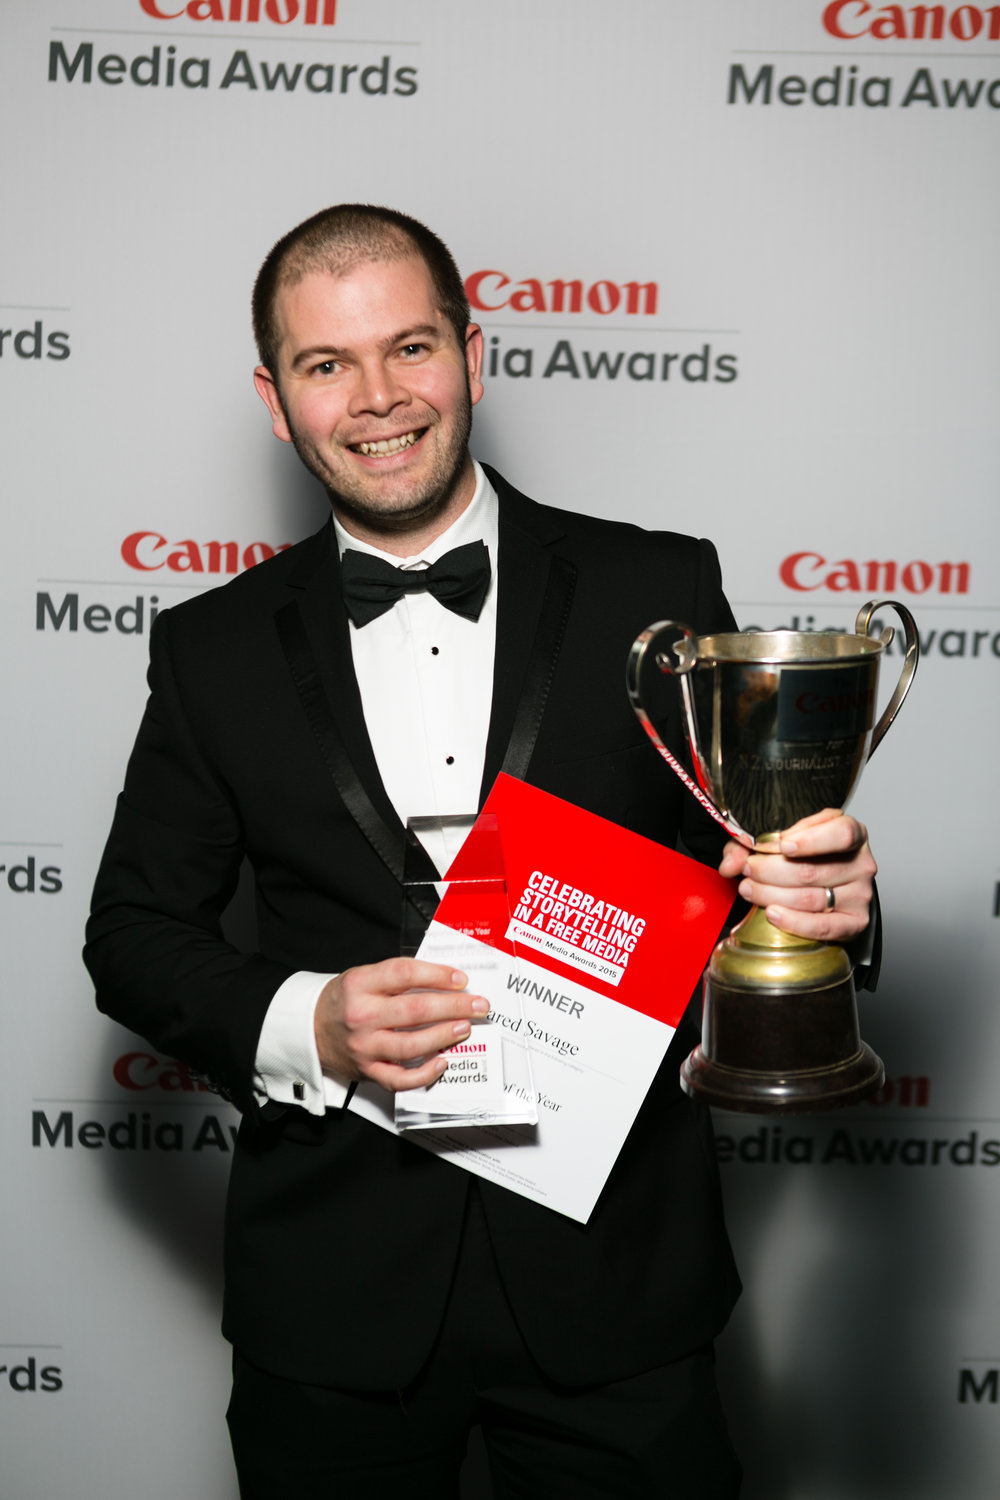 canon_media_awards_2015_interlike_nz_clinton_tudor-5948-197.jpg